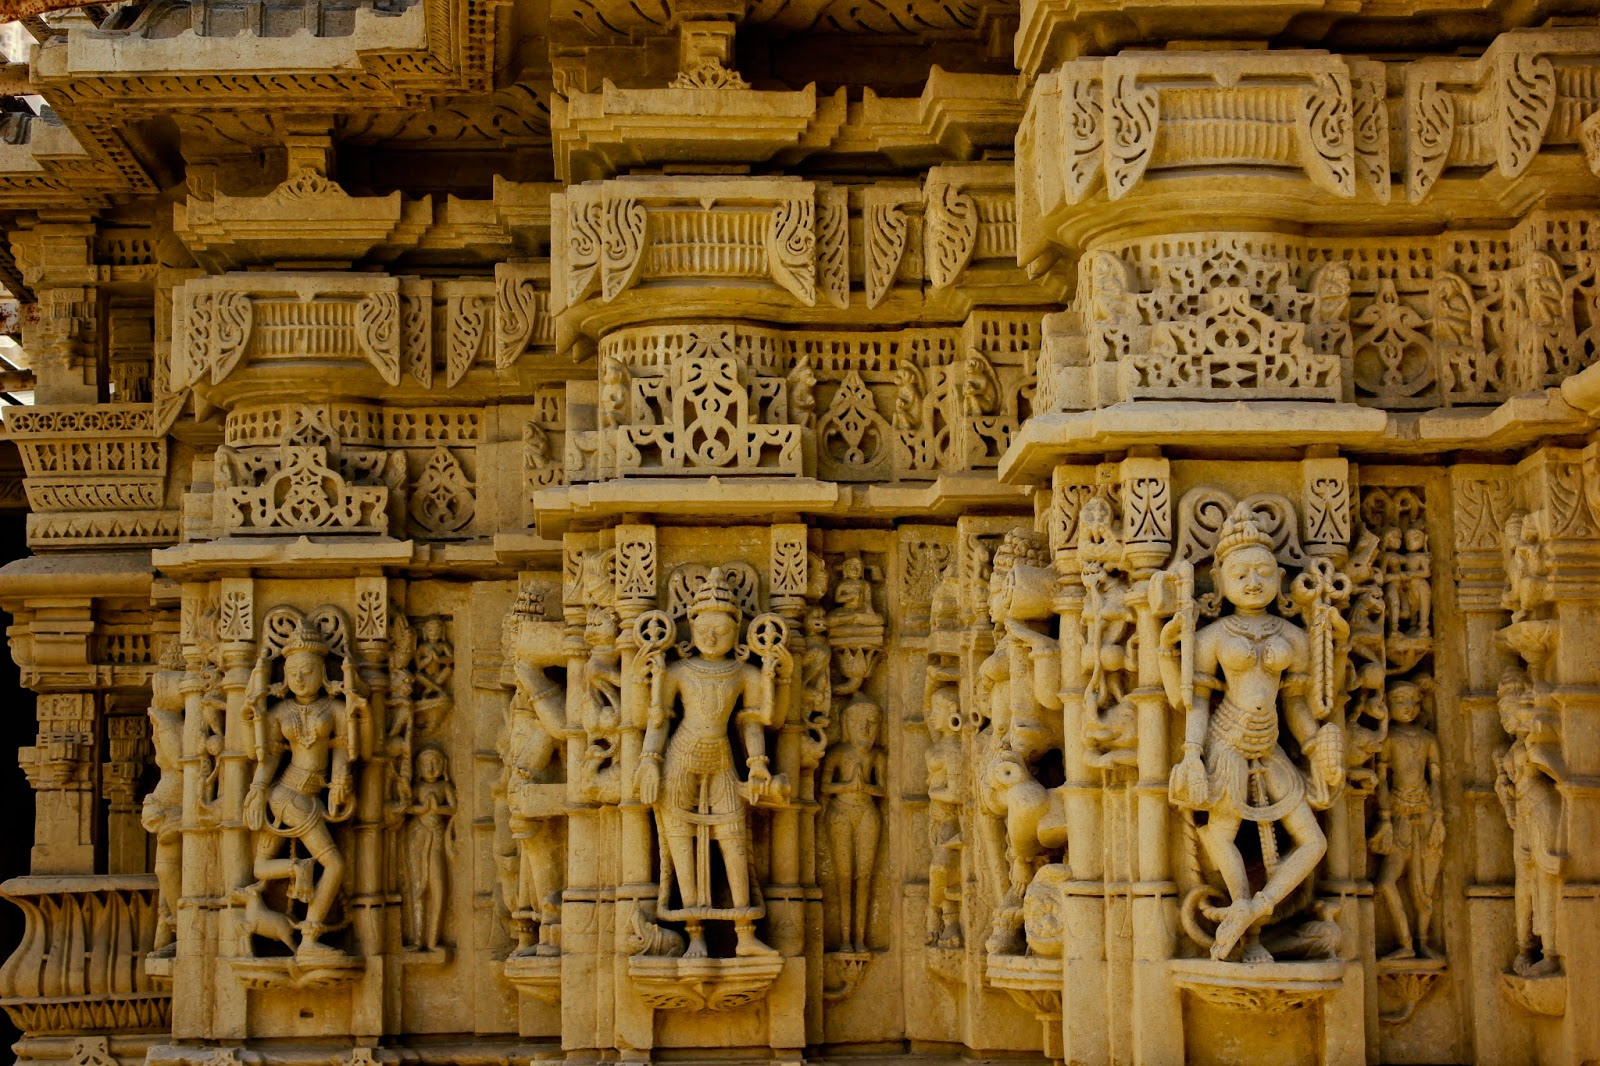 Artistic architecture at the Jain Temple inside the Jaisalmer Fort